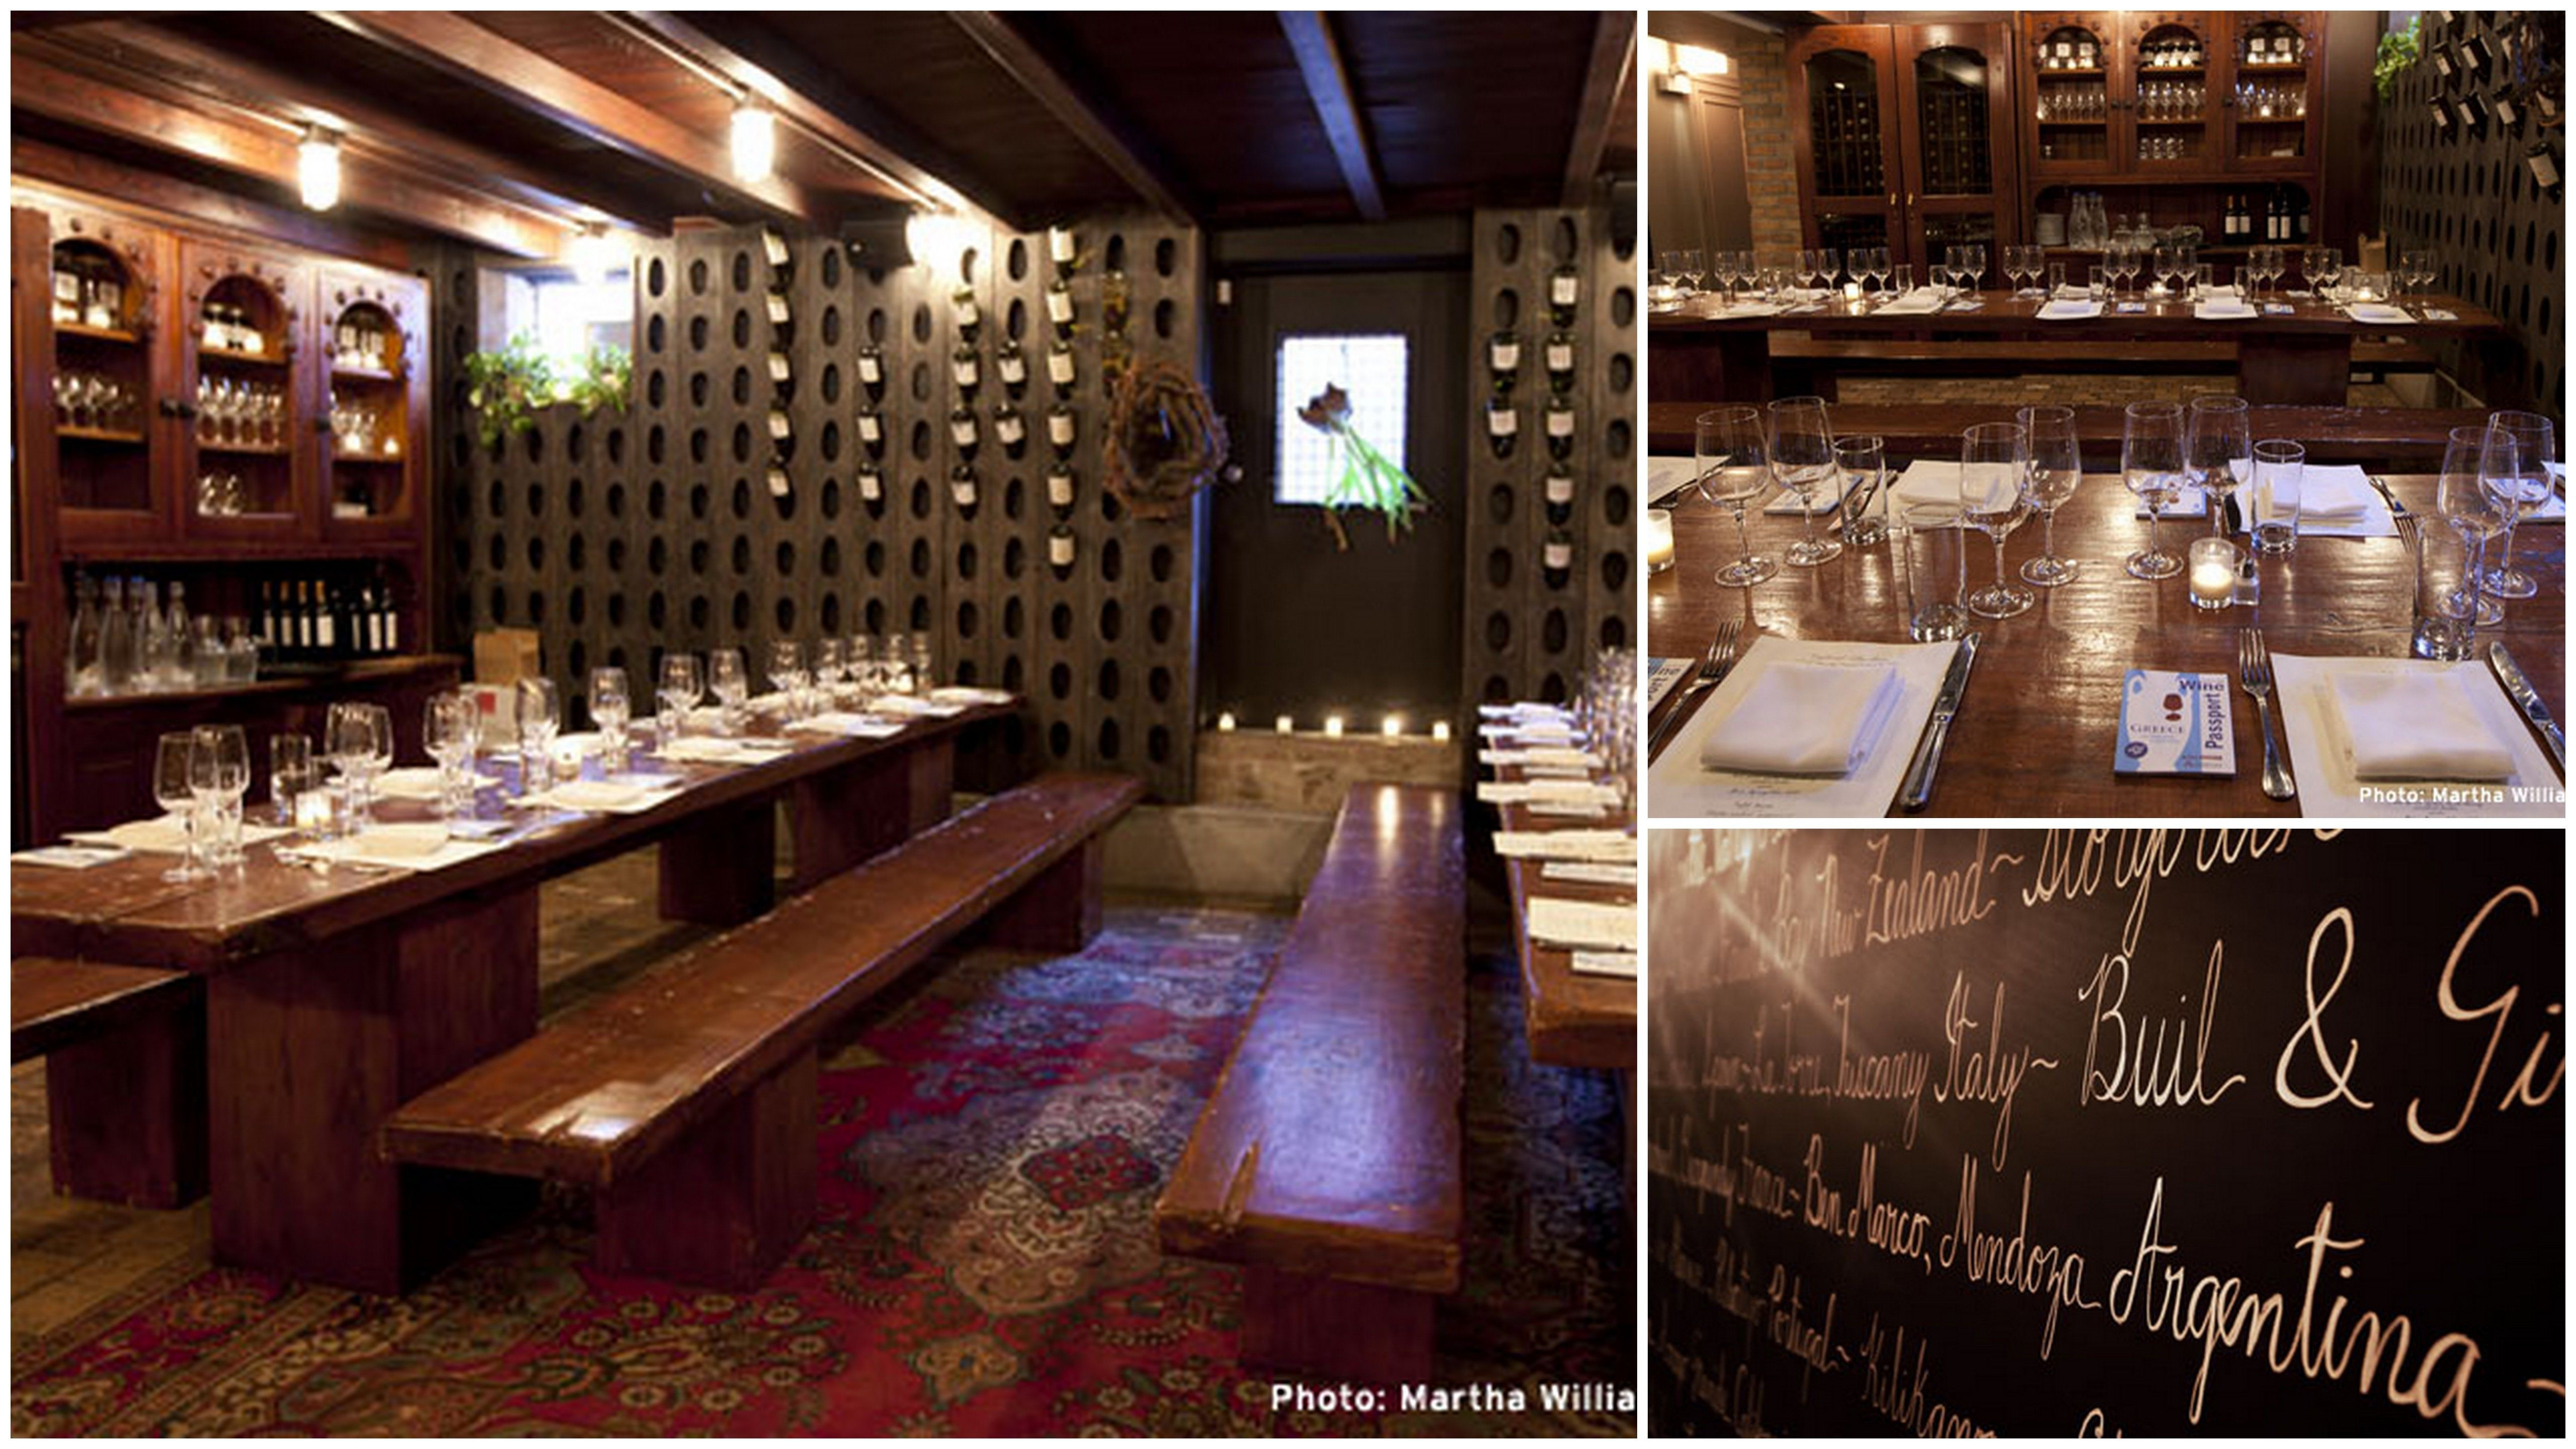 Chicago Restaurants With Private Dining Rooms Unique Pincarrie Hoeksema On Interior Design  Pinterest  Cafe Shop Decorating Inspiration